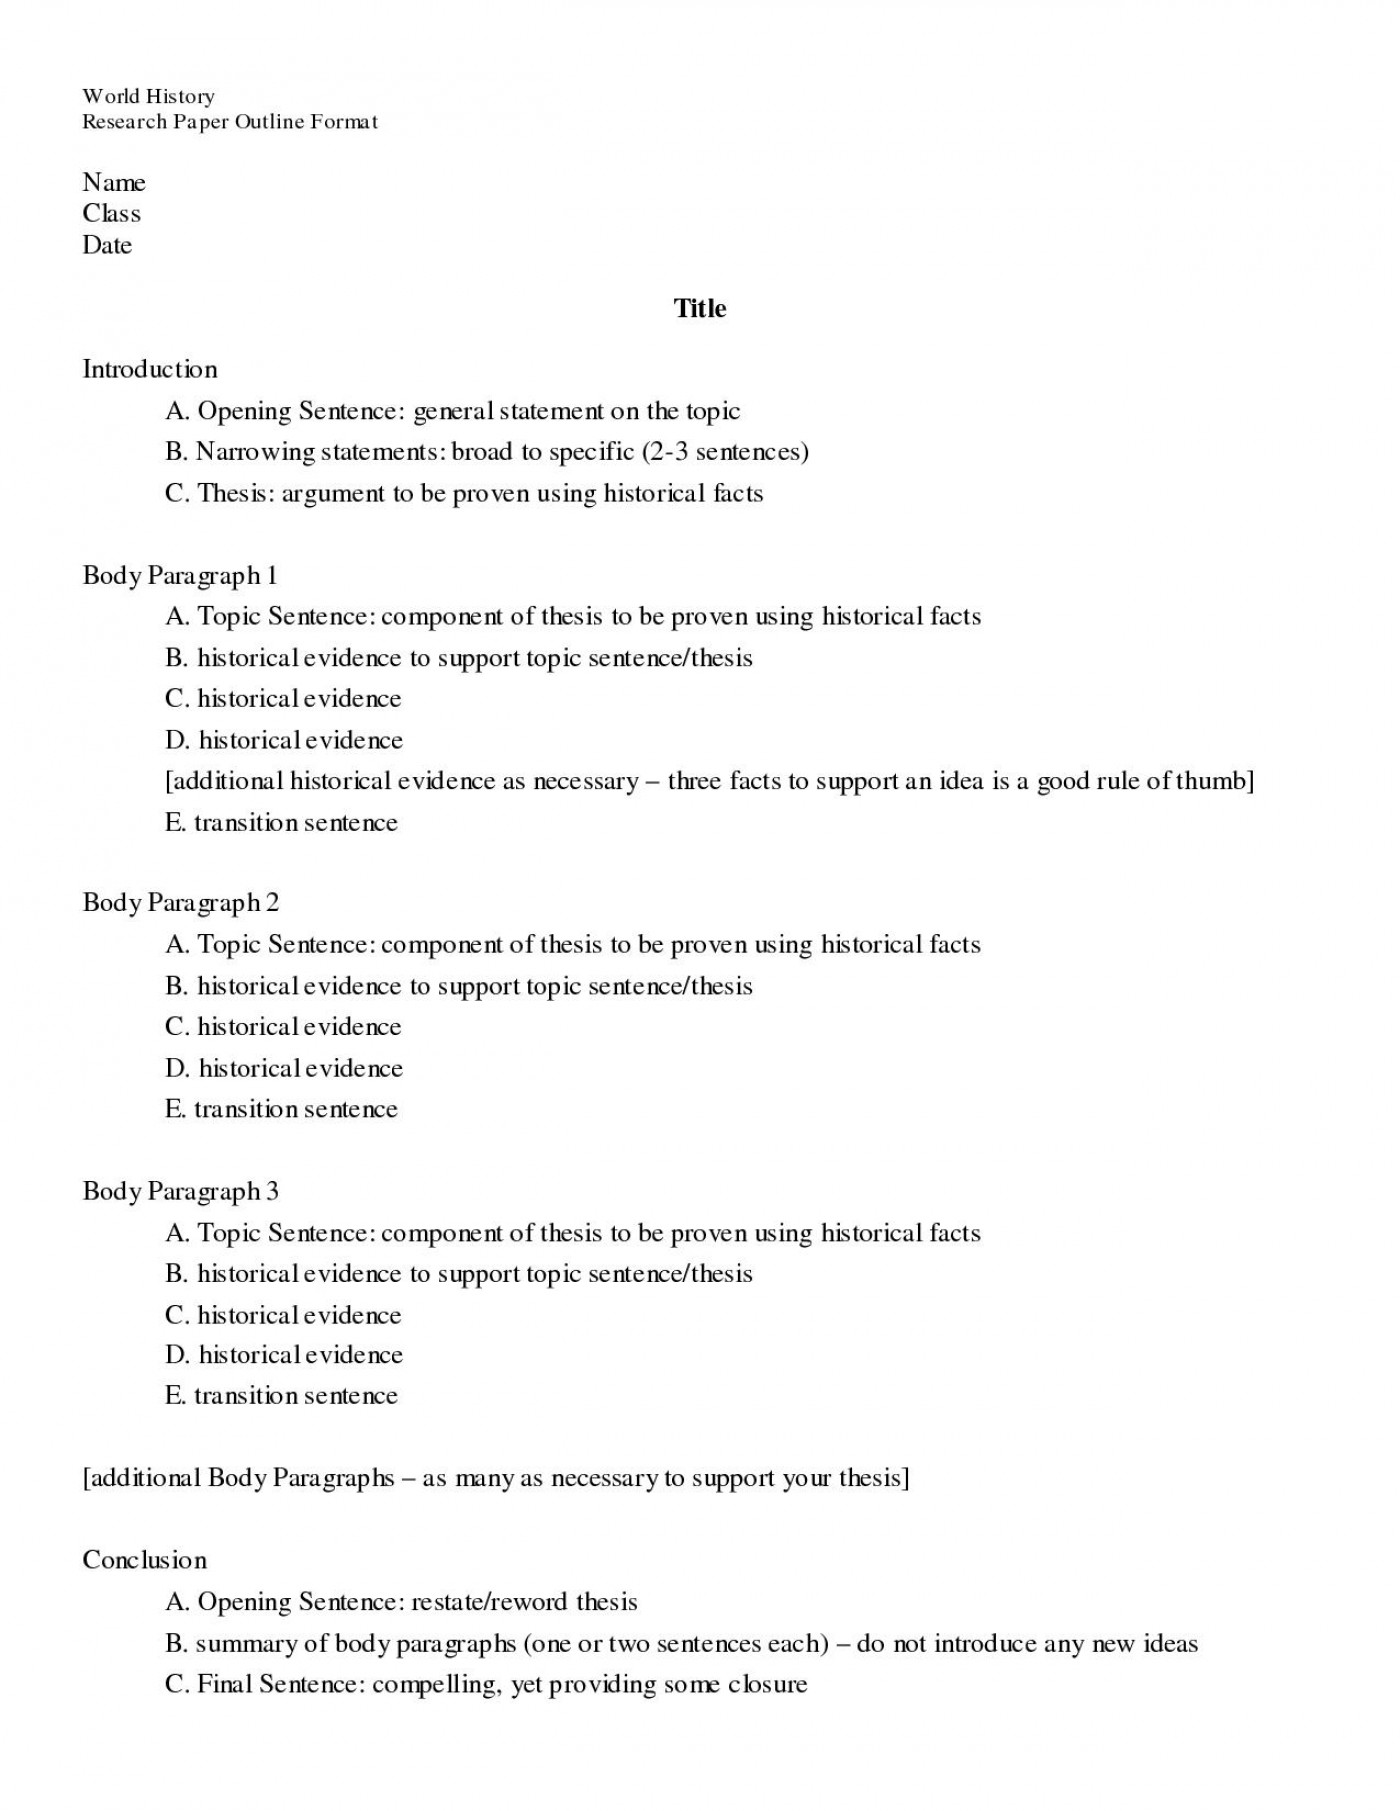 012 Outline Image1 Sample Outlines For Researchs Awful Research Papers Writing Example Apa Format 1400